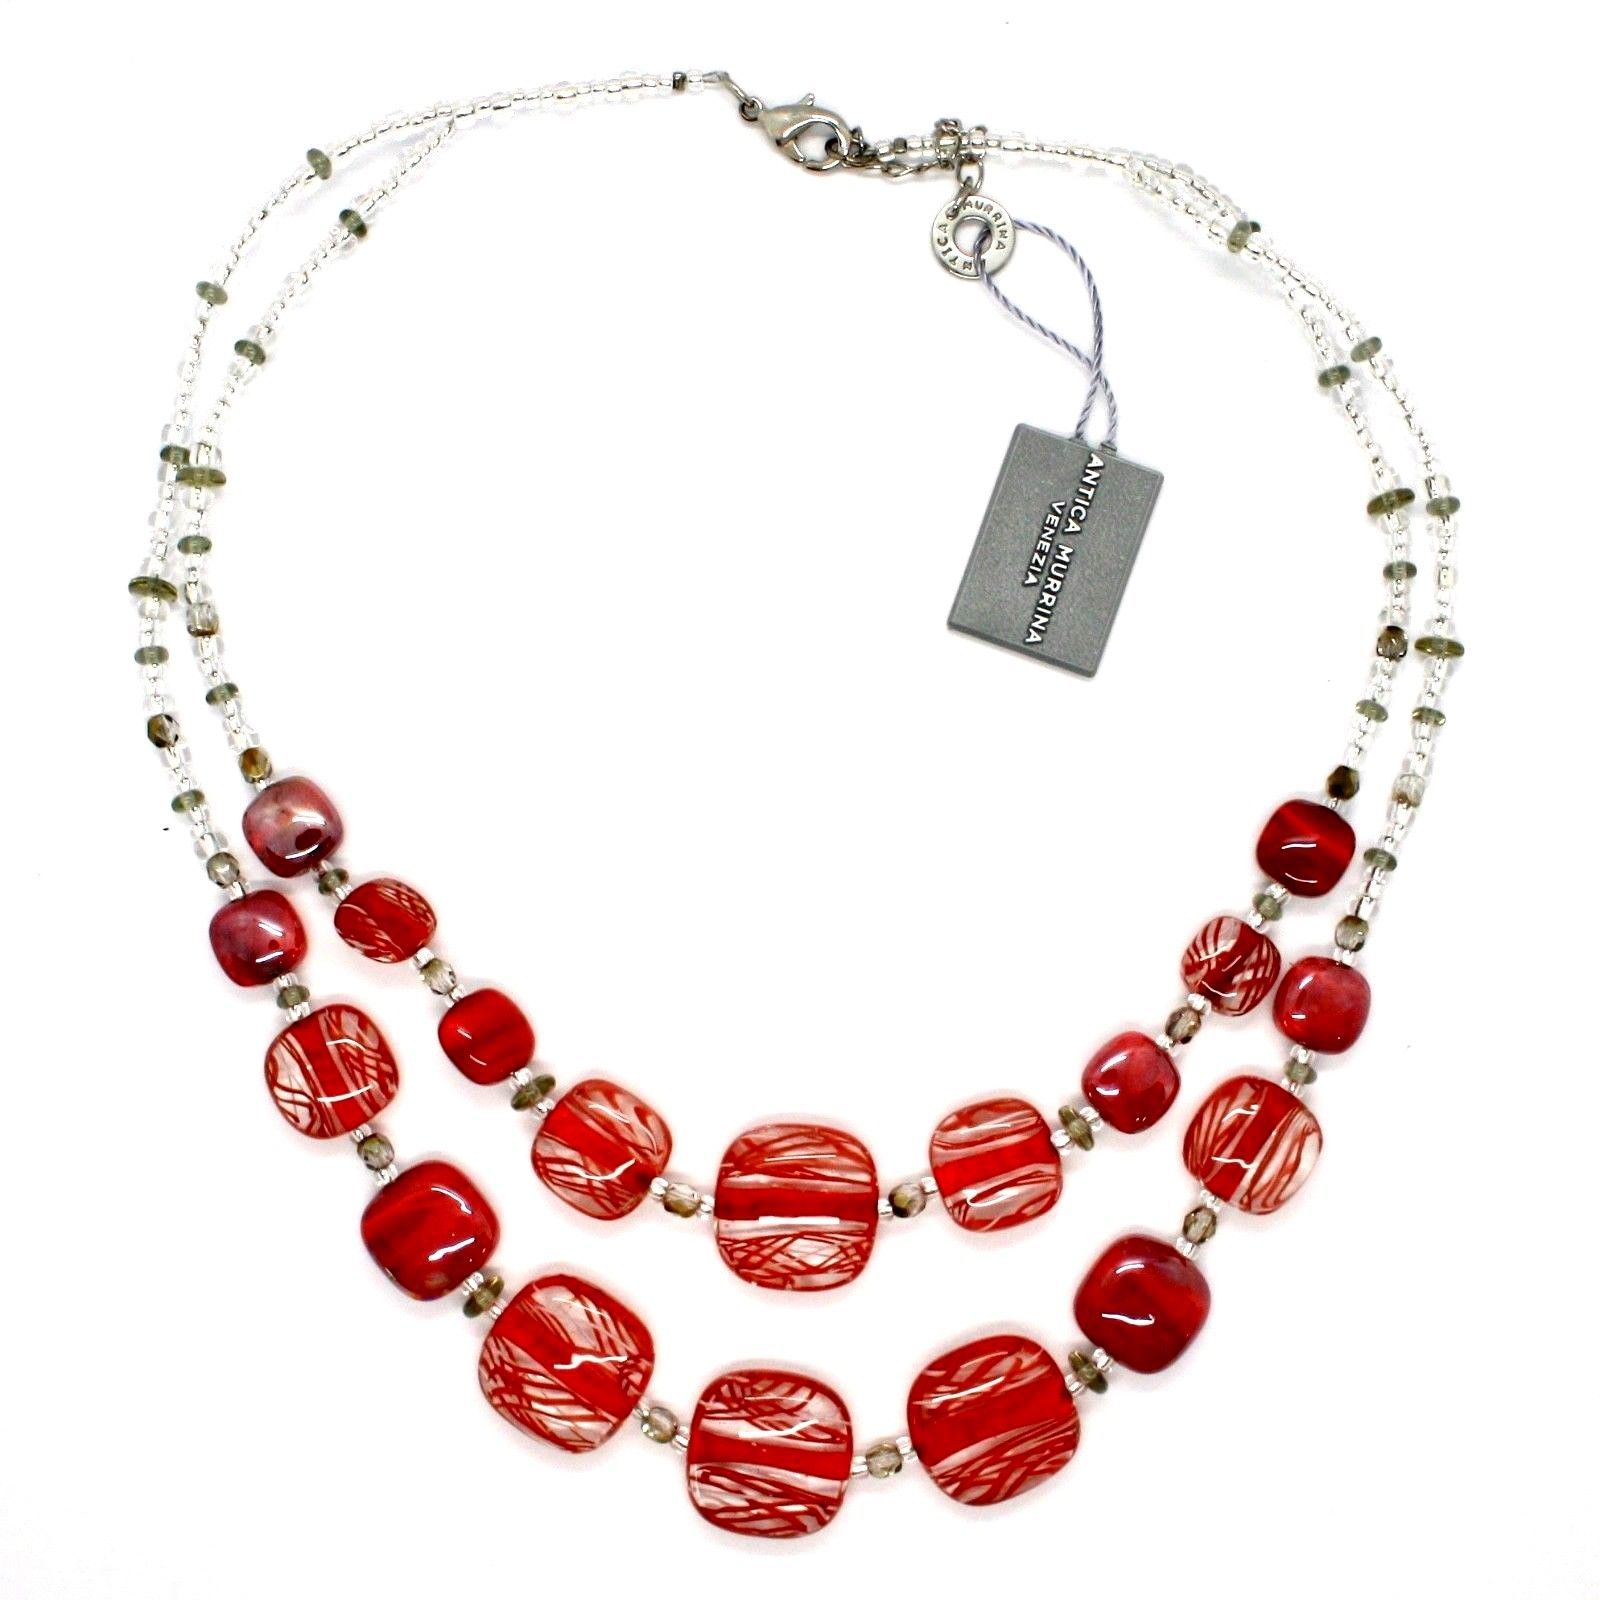 NECKLACE ANTICA MURRINA VENEZIA WITH MURANO GLASS RED AND WHITE CO950A11